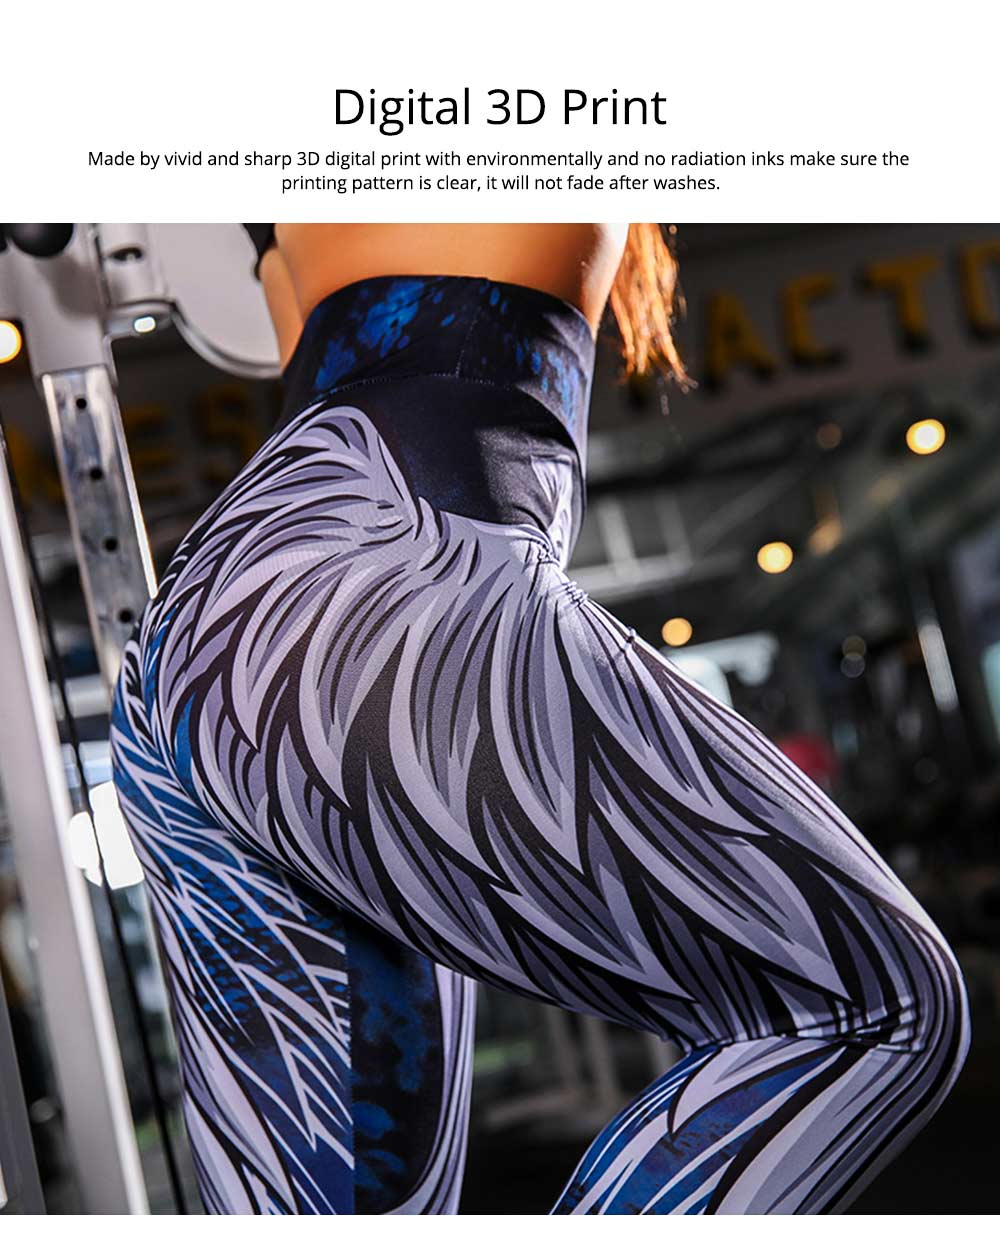 High Waist Yoga Pants Tummy Control Workout Leggings Digital 3D Wing Print Cropped Leggings for Women 1